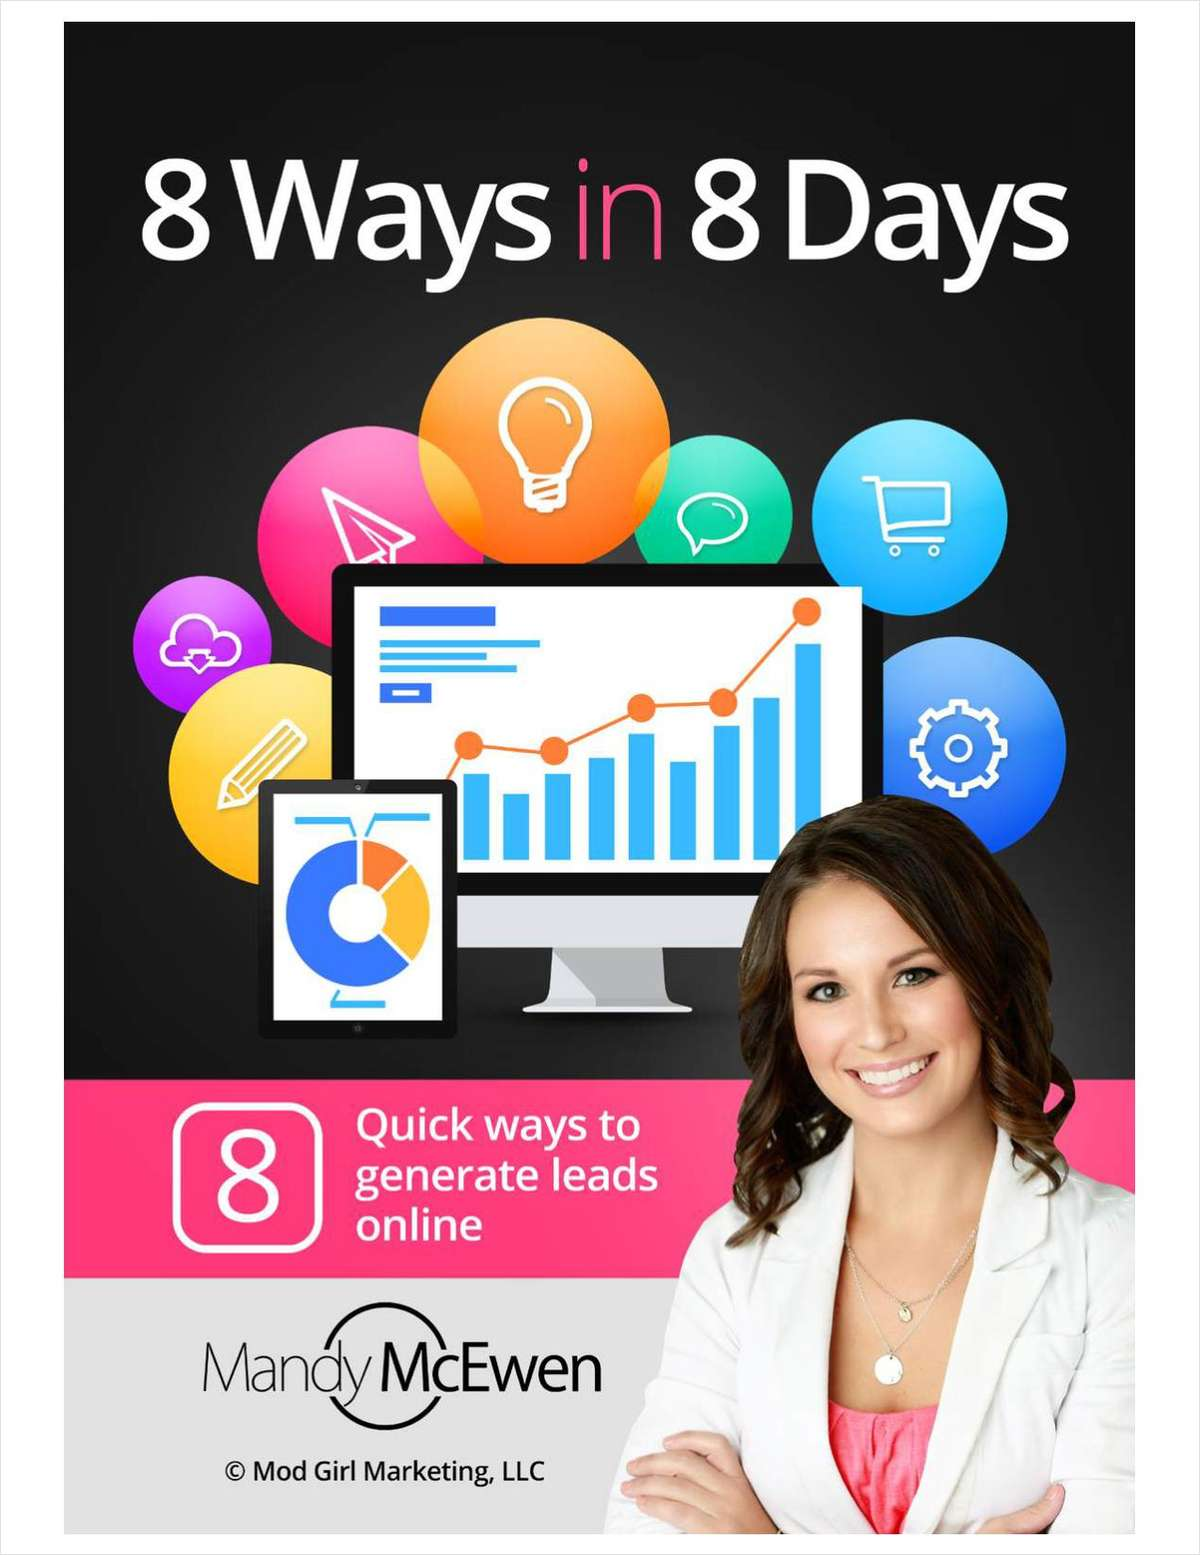 8 Ways in 8 Days